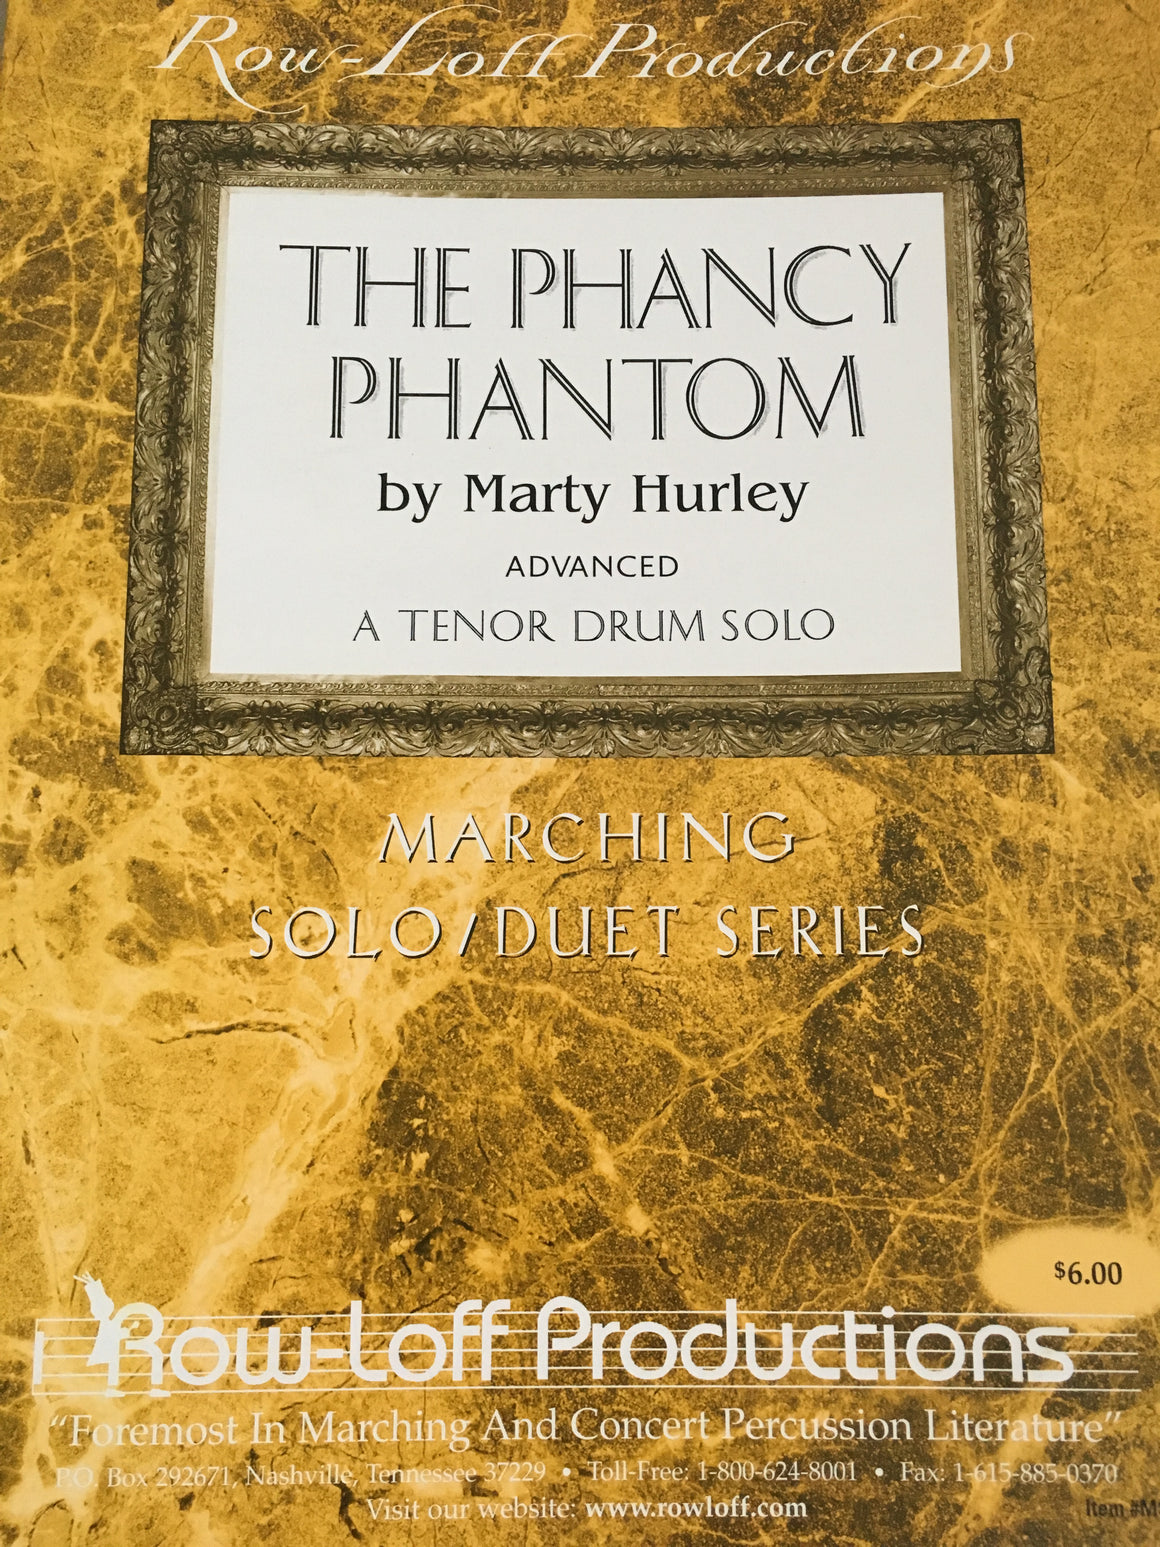 The Phancy Phantom - Advanced - Tenor Drum Solo - Hurley